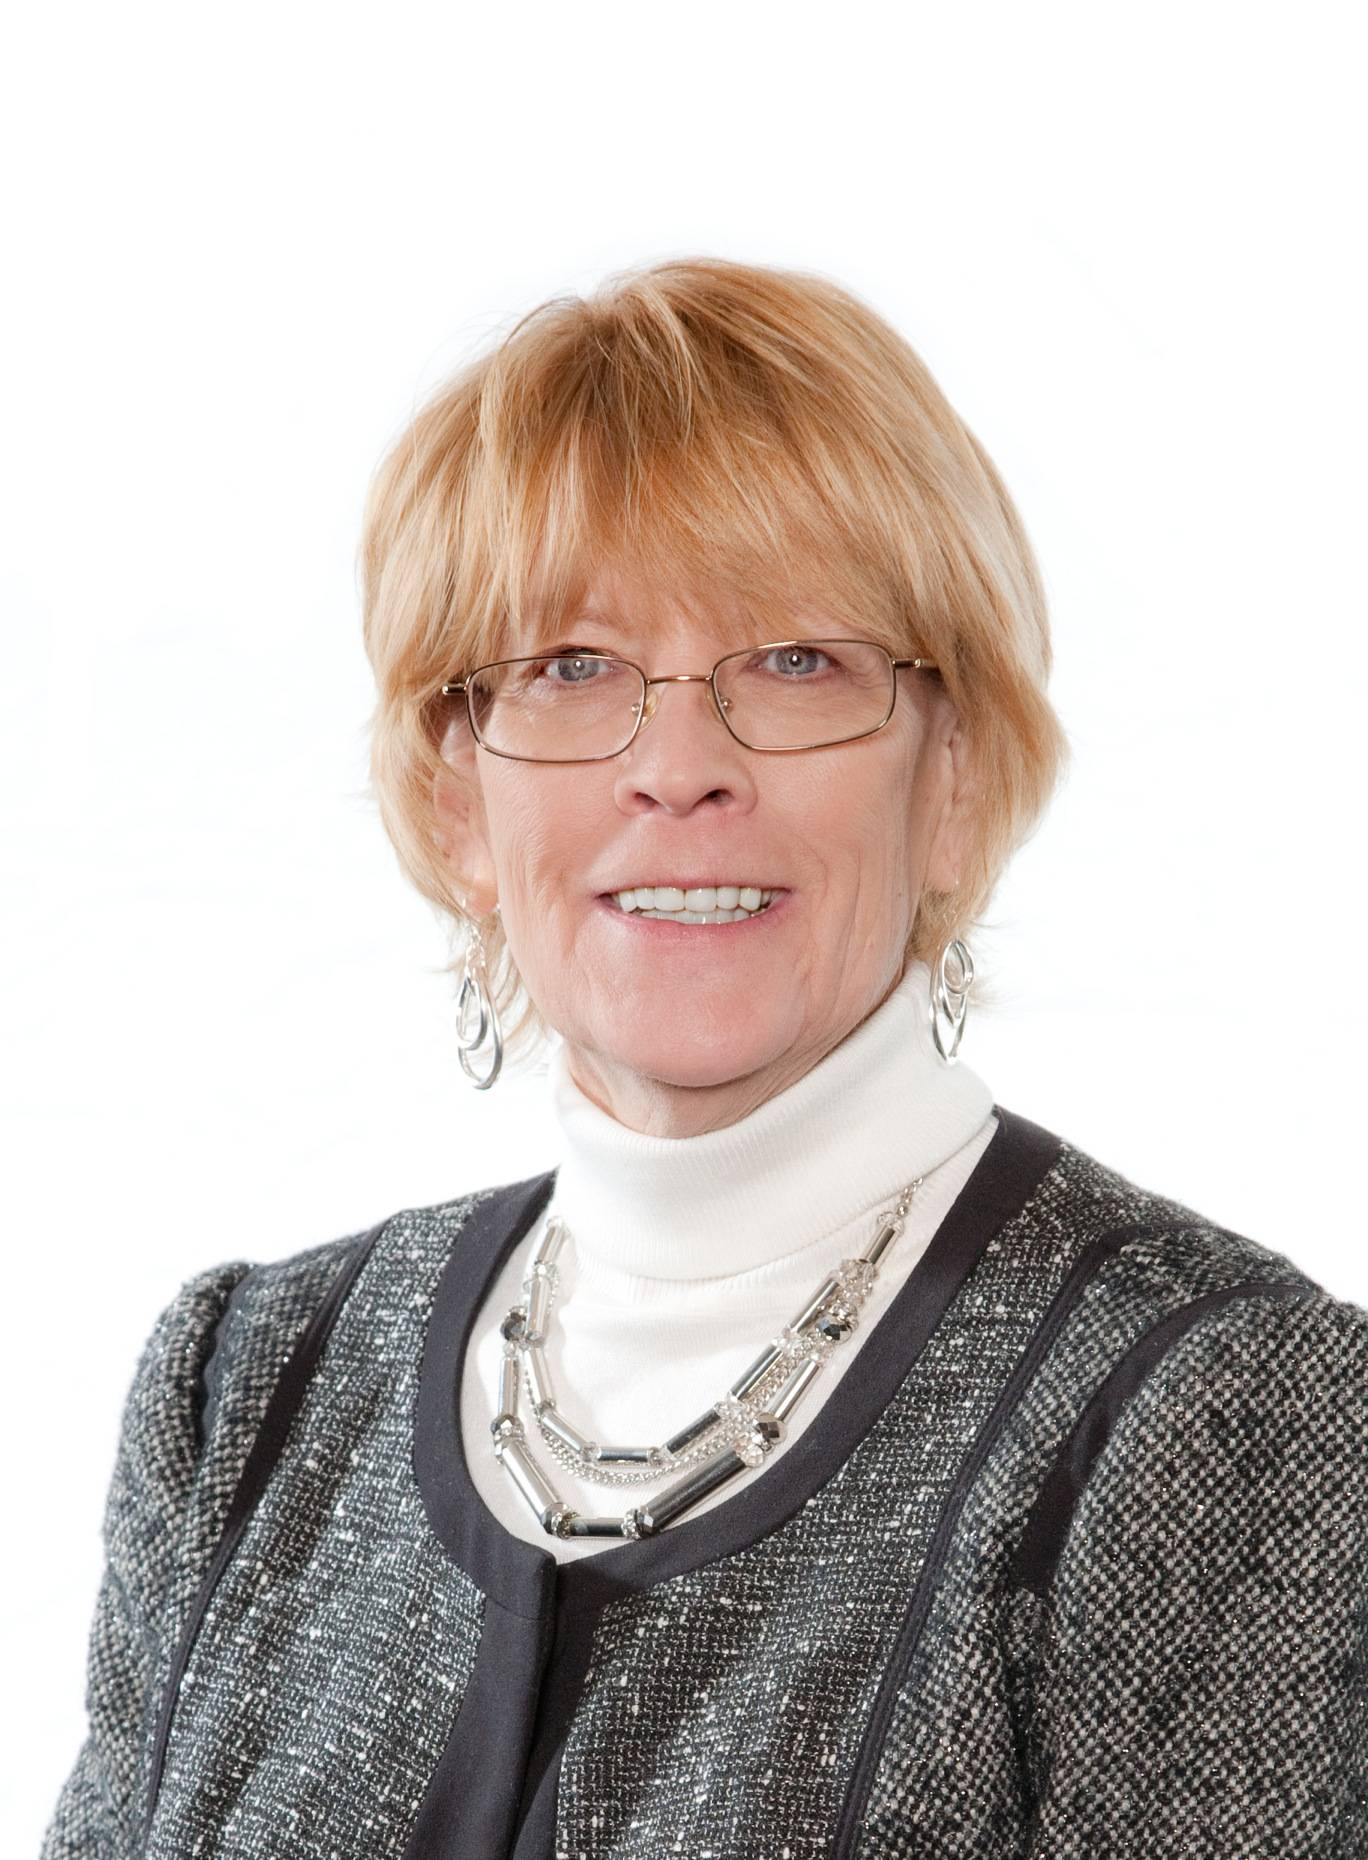 Joyce Hundhausen, running for Bloomingdale Township Board (4-year Terms)